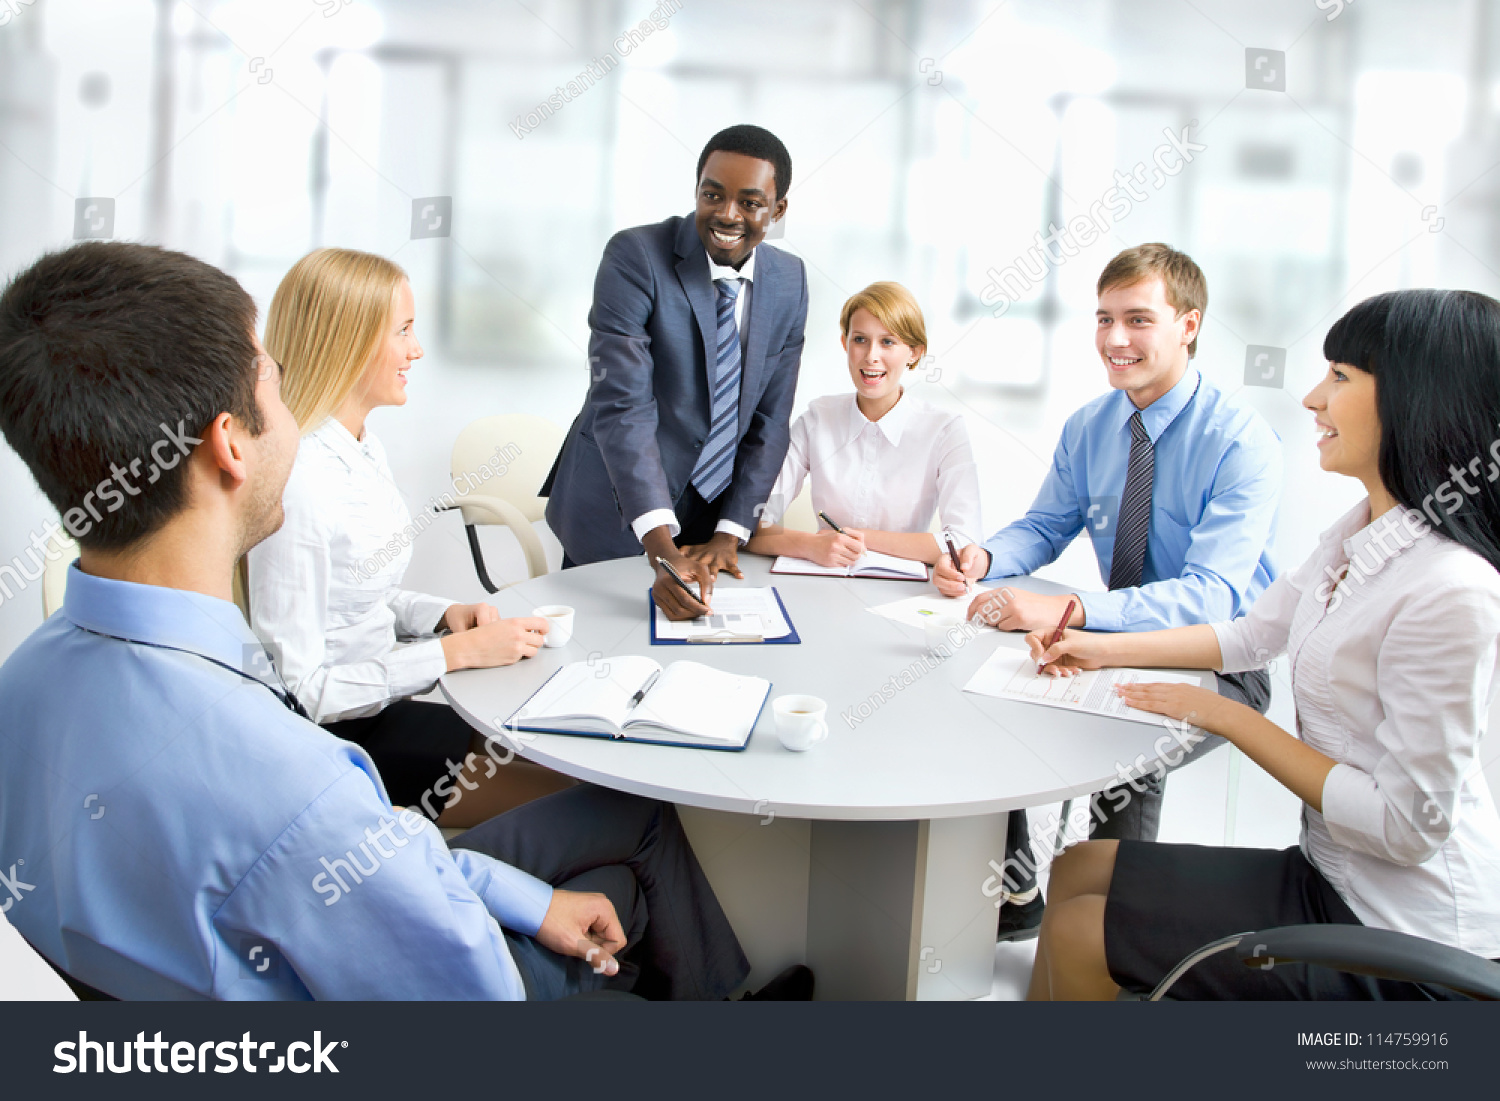 how to work with a diverse group